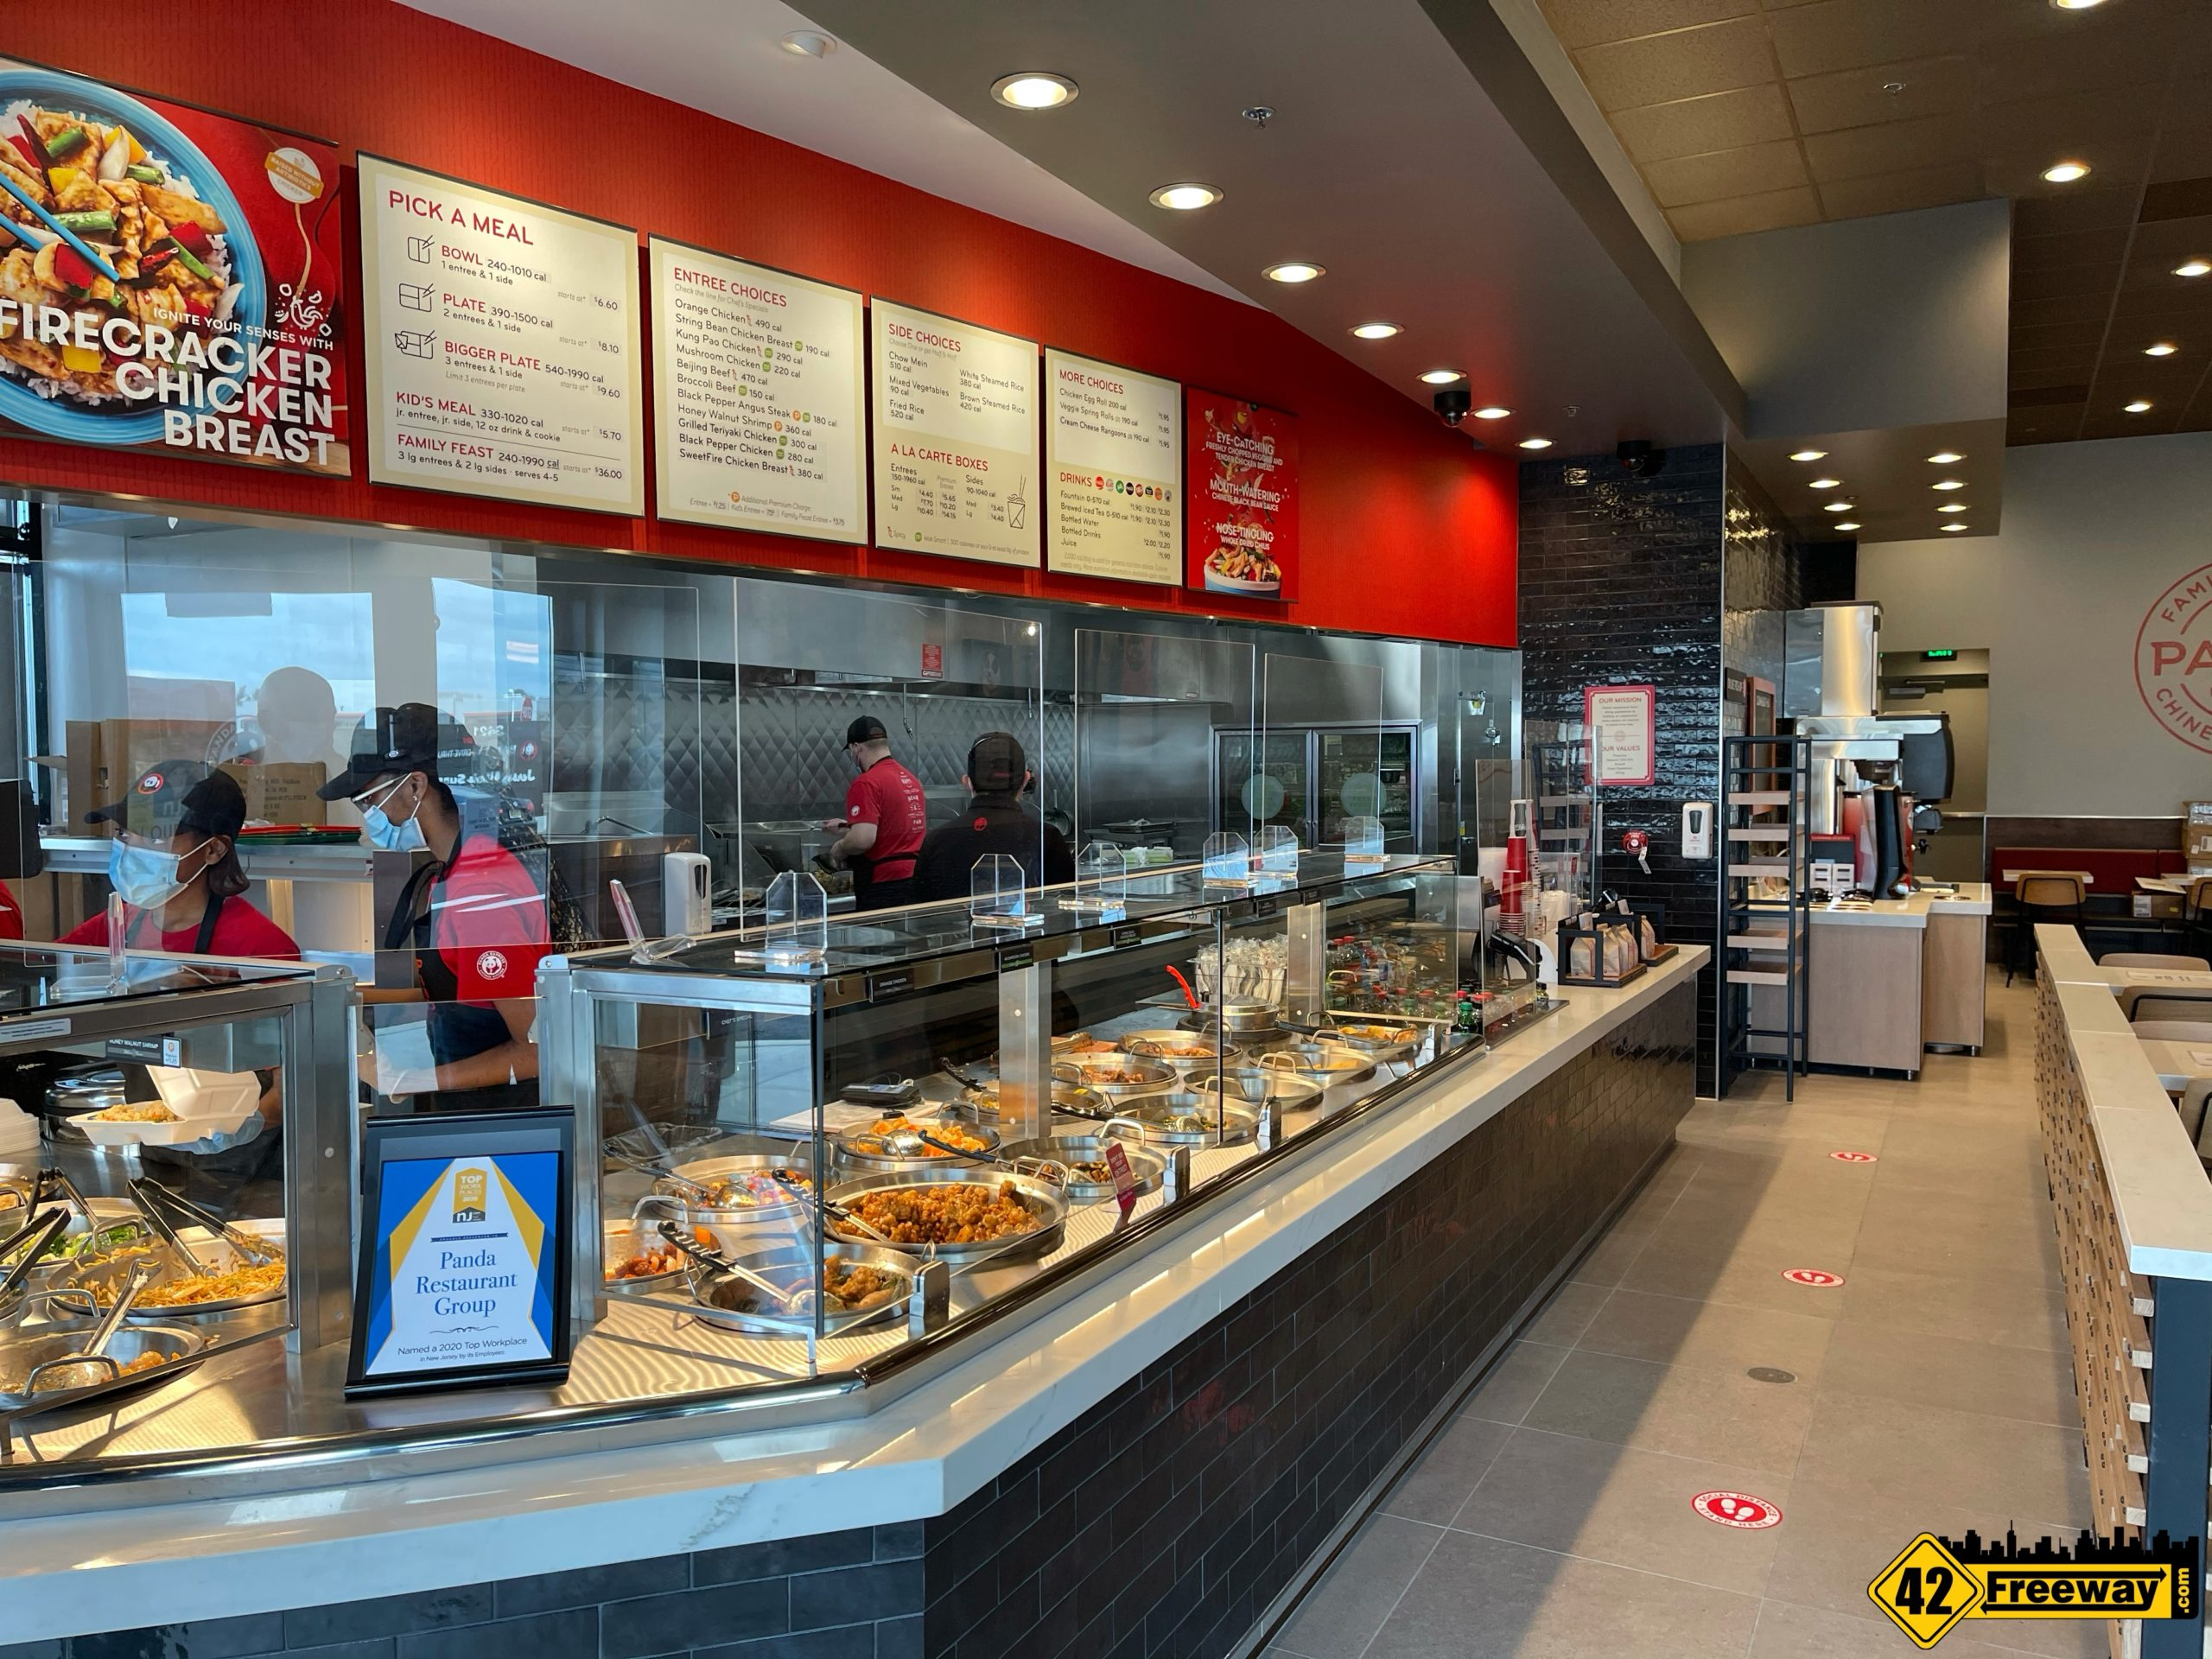 Panda Express Washington Township Is Open for Take Out and Drive-Thru.  Jersey Mike's Opened in December